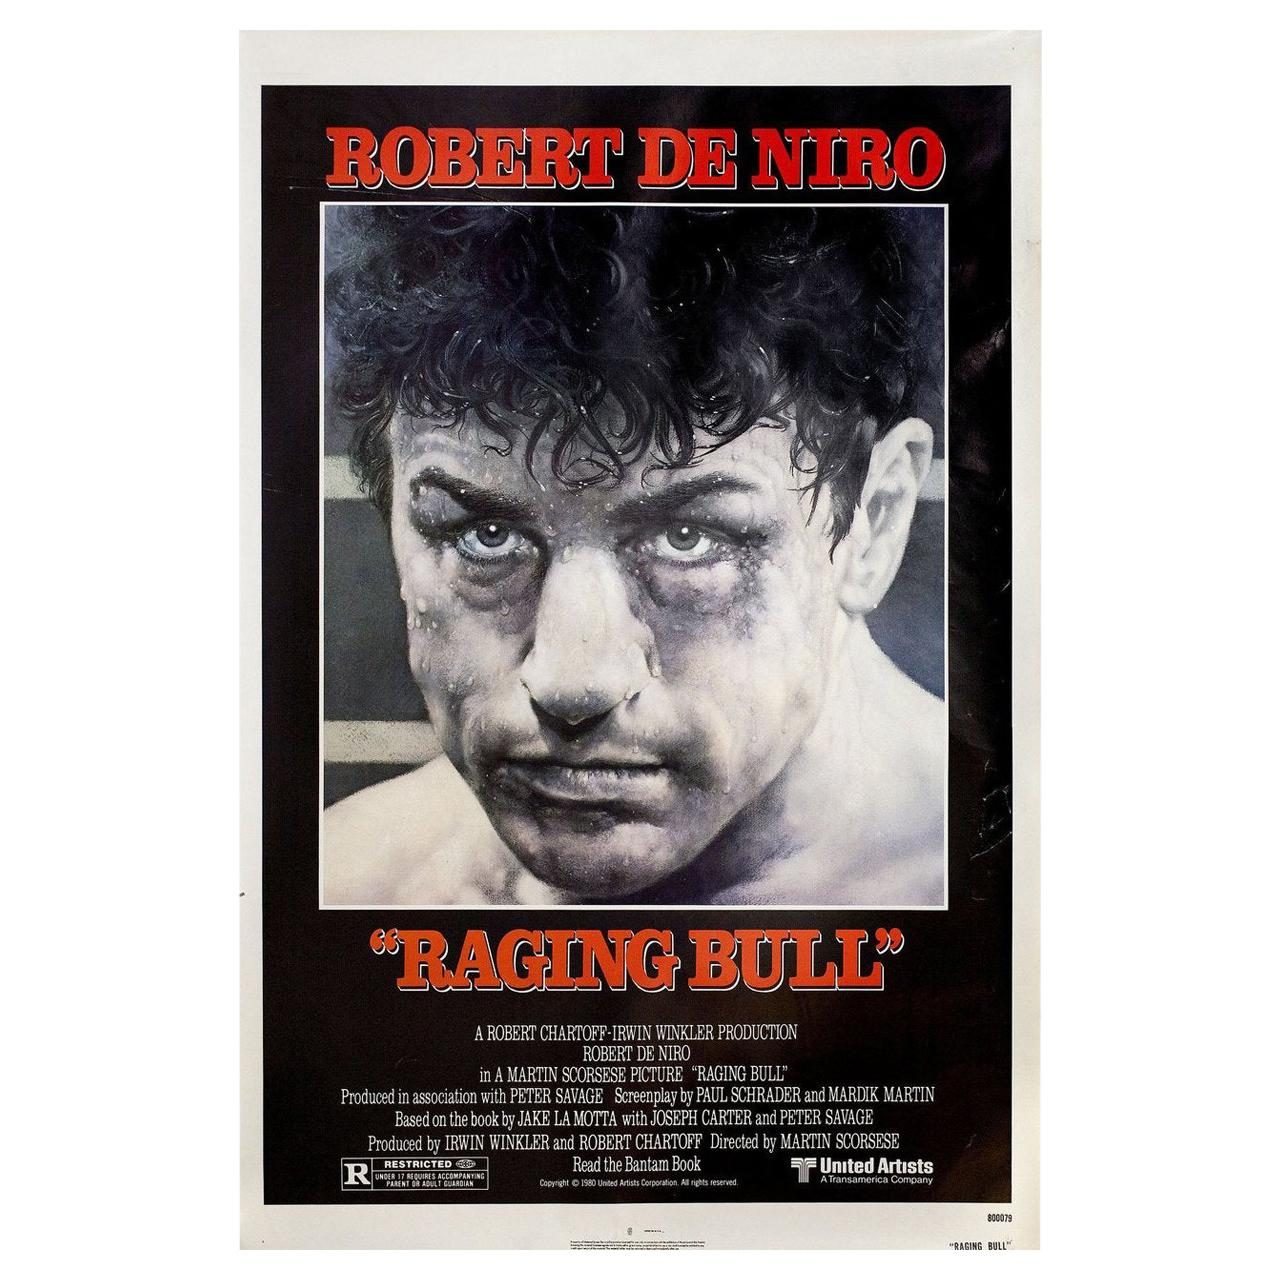 'Raging Bull' 1980 U.S. One Sheet Film Poster